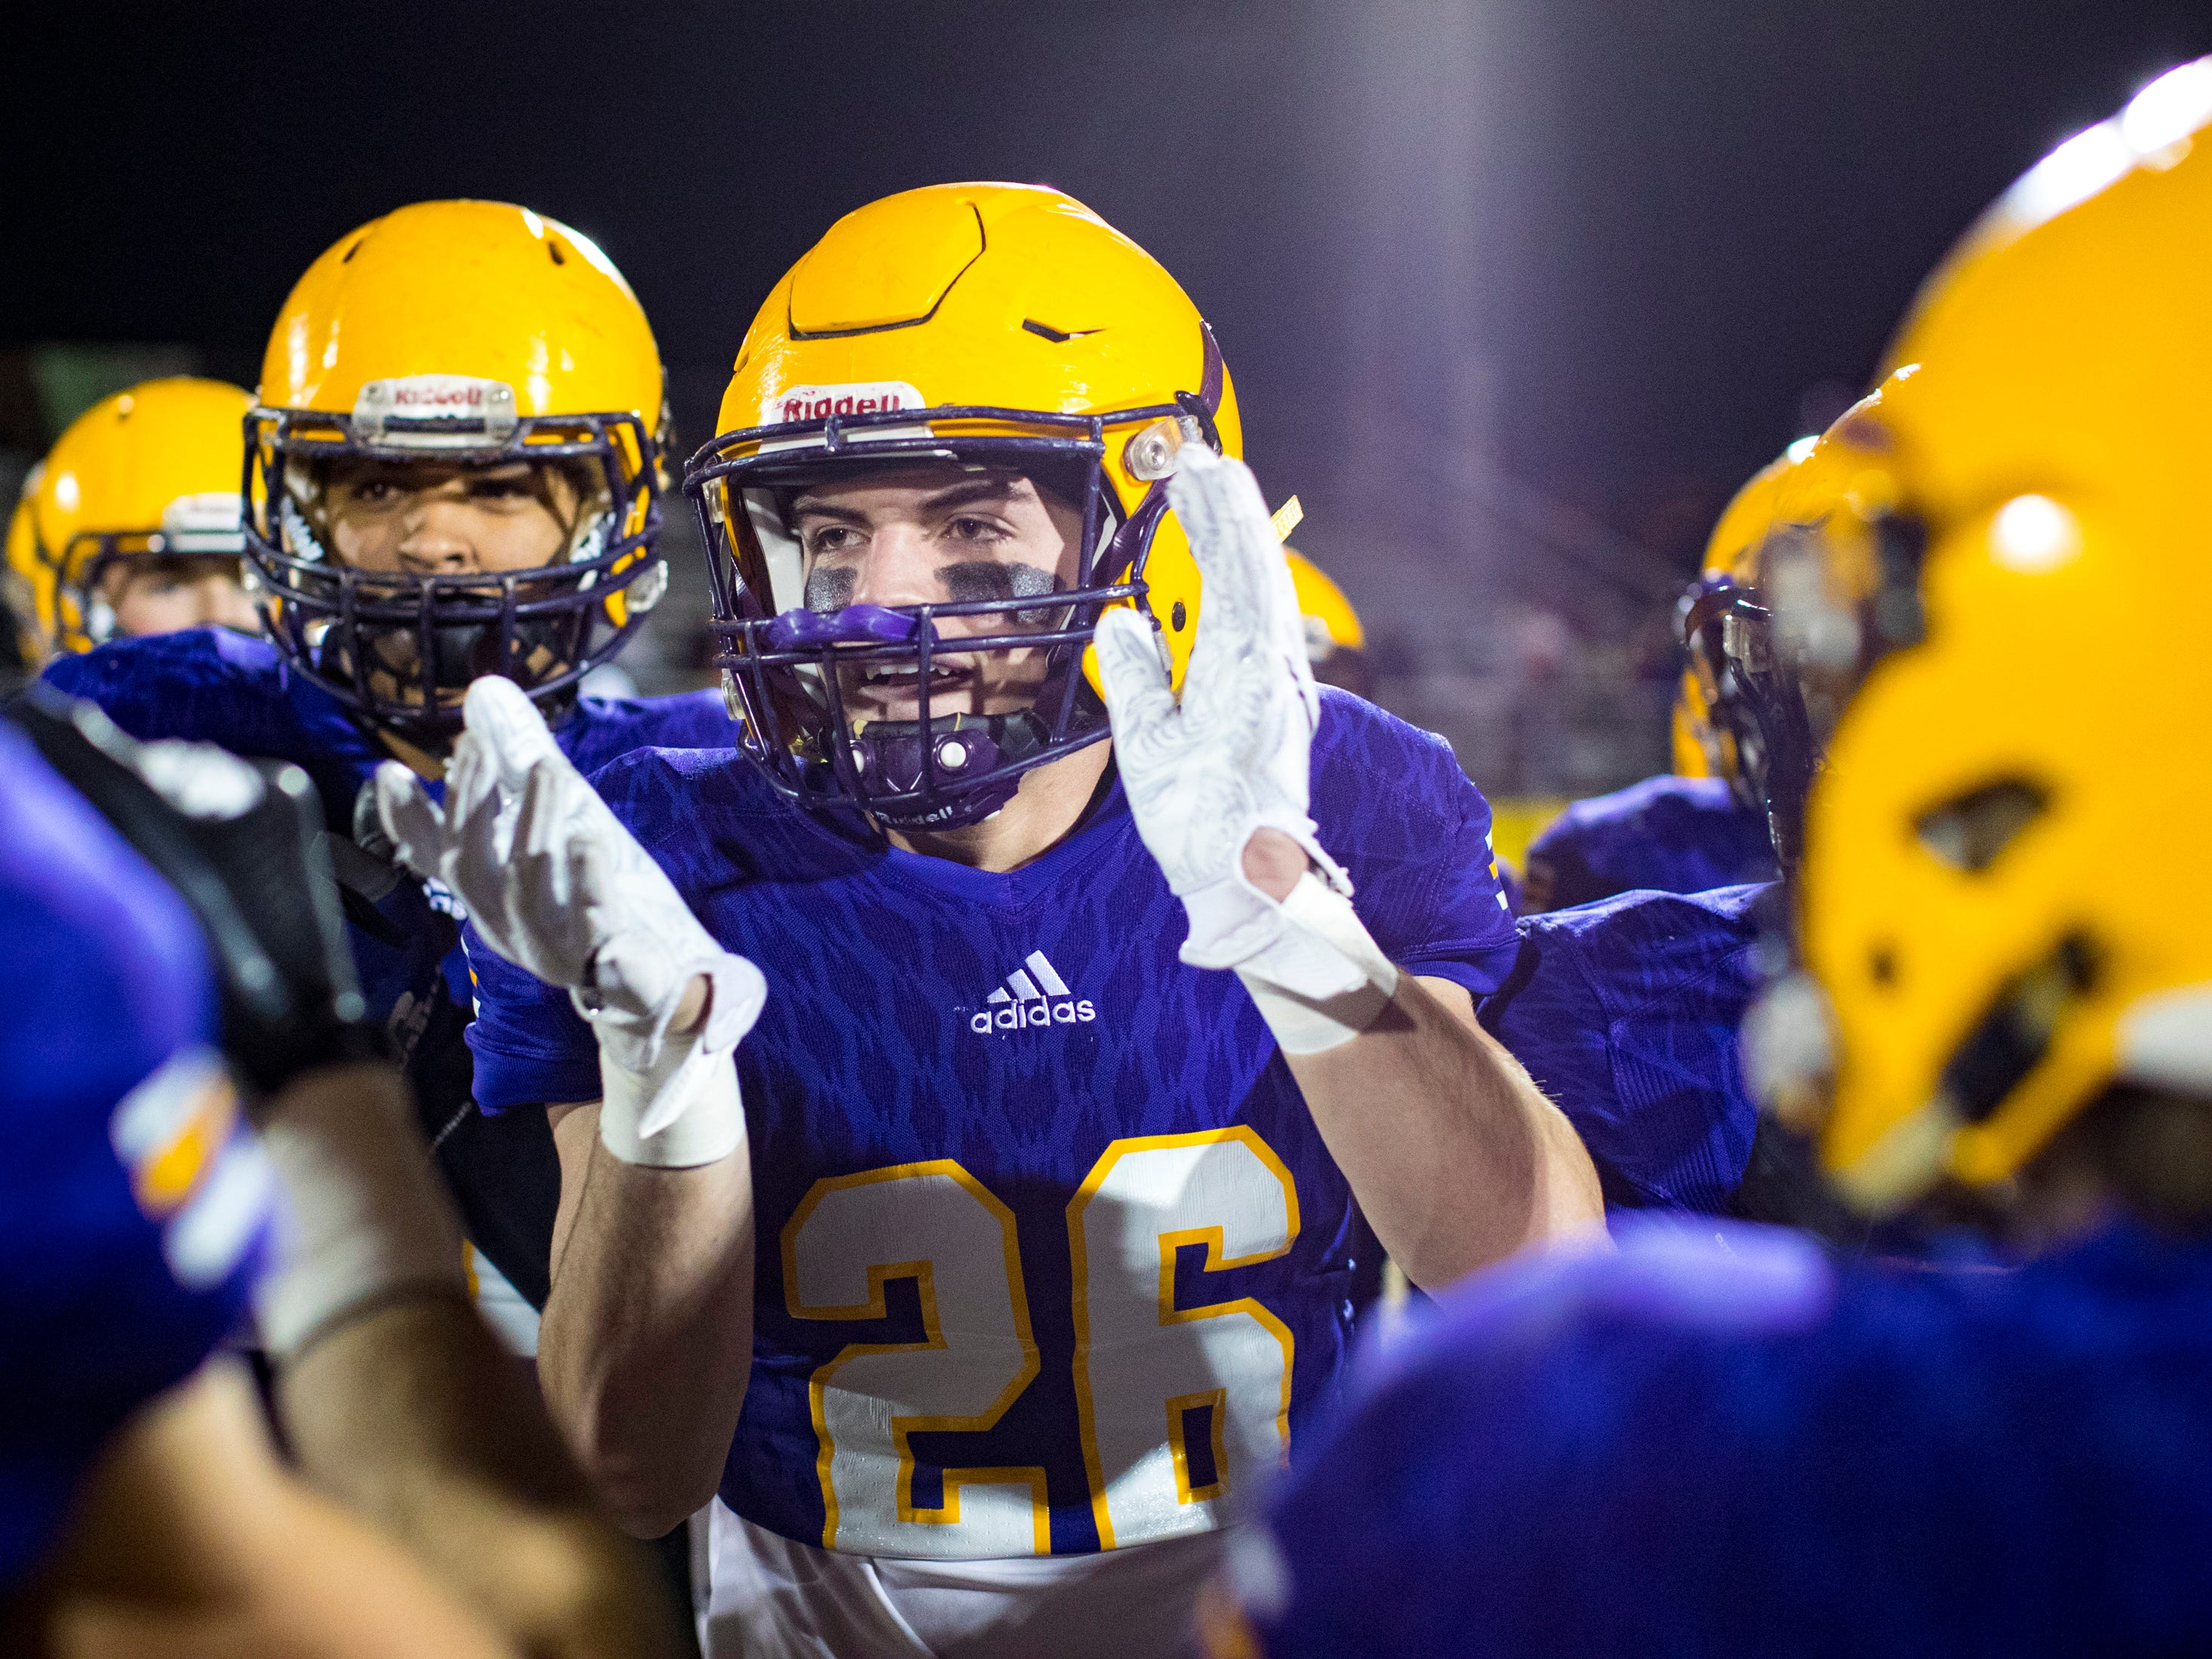 Trousdale County's Davis Stewart (26) cheers before Trousdale County's game against Meigs County at Jim Satterfield Stadium in Hartsville on Friday, Nov. 23, 2018.